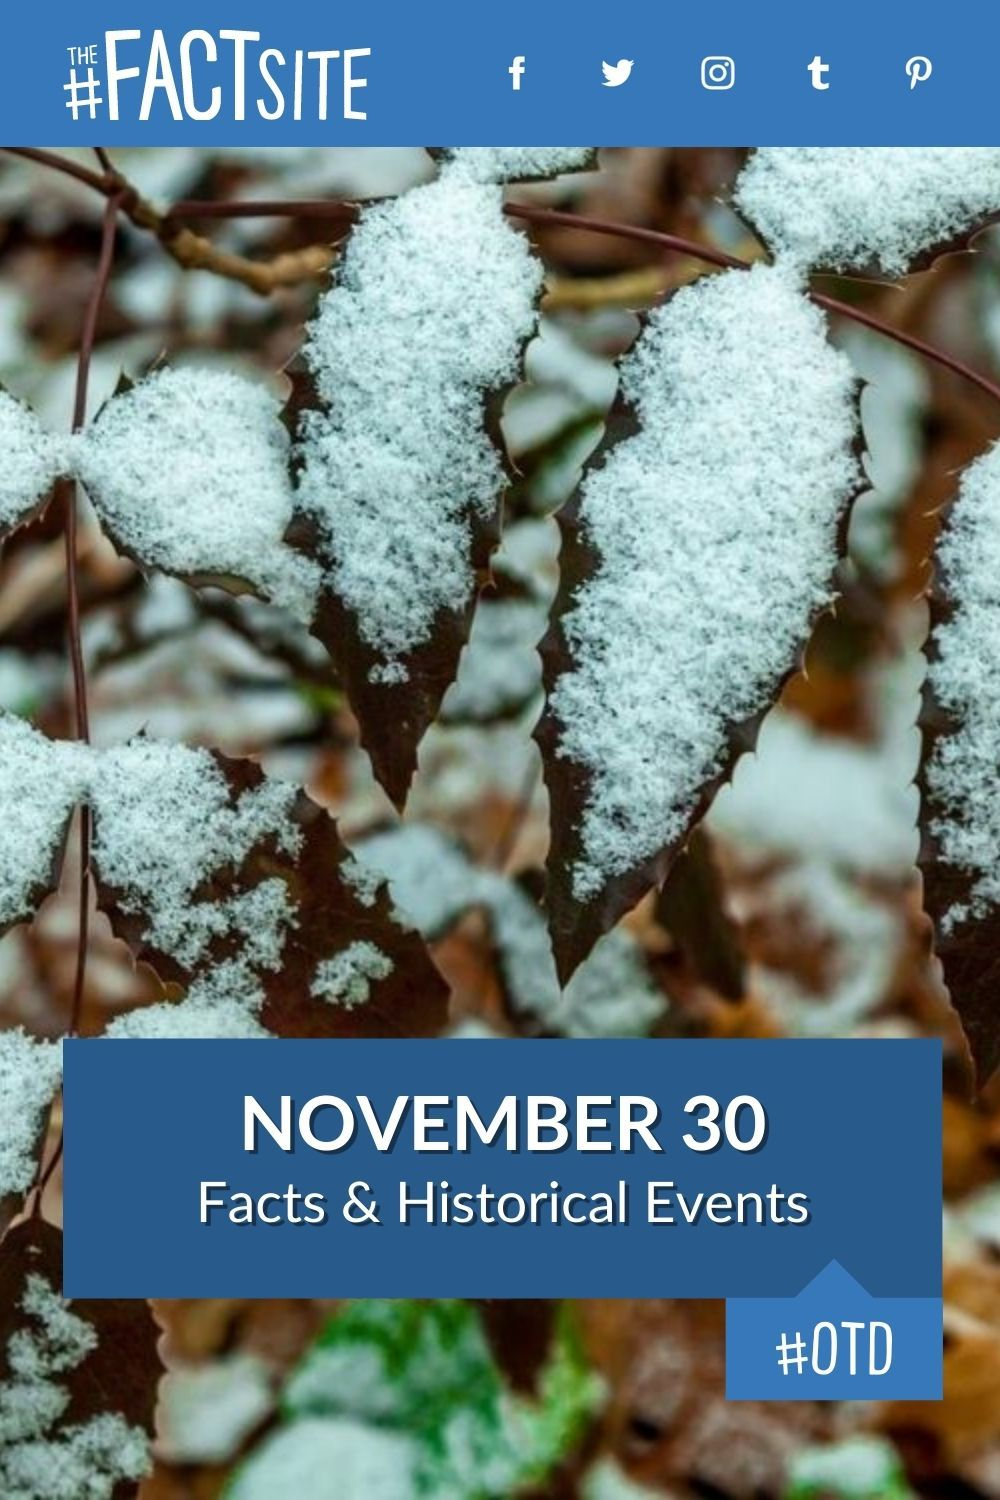 Facts & Historic Events That Happened on November 30